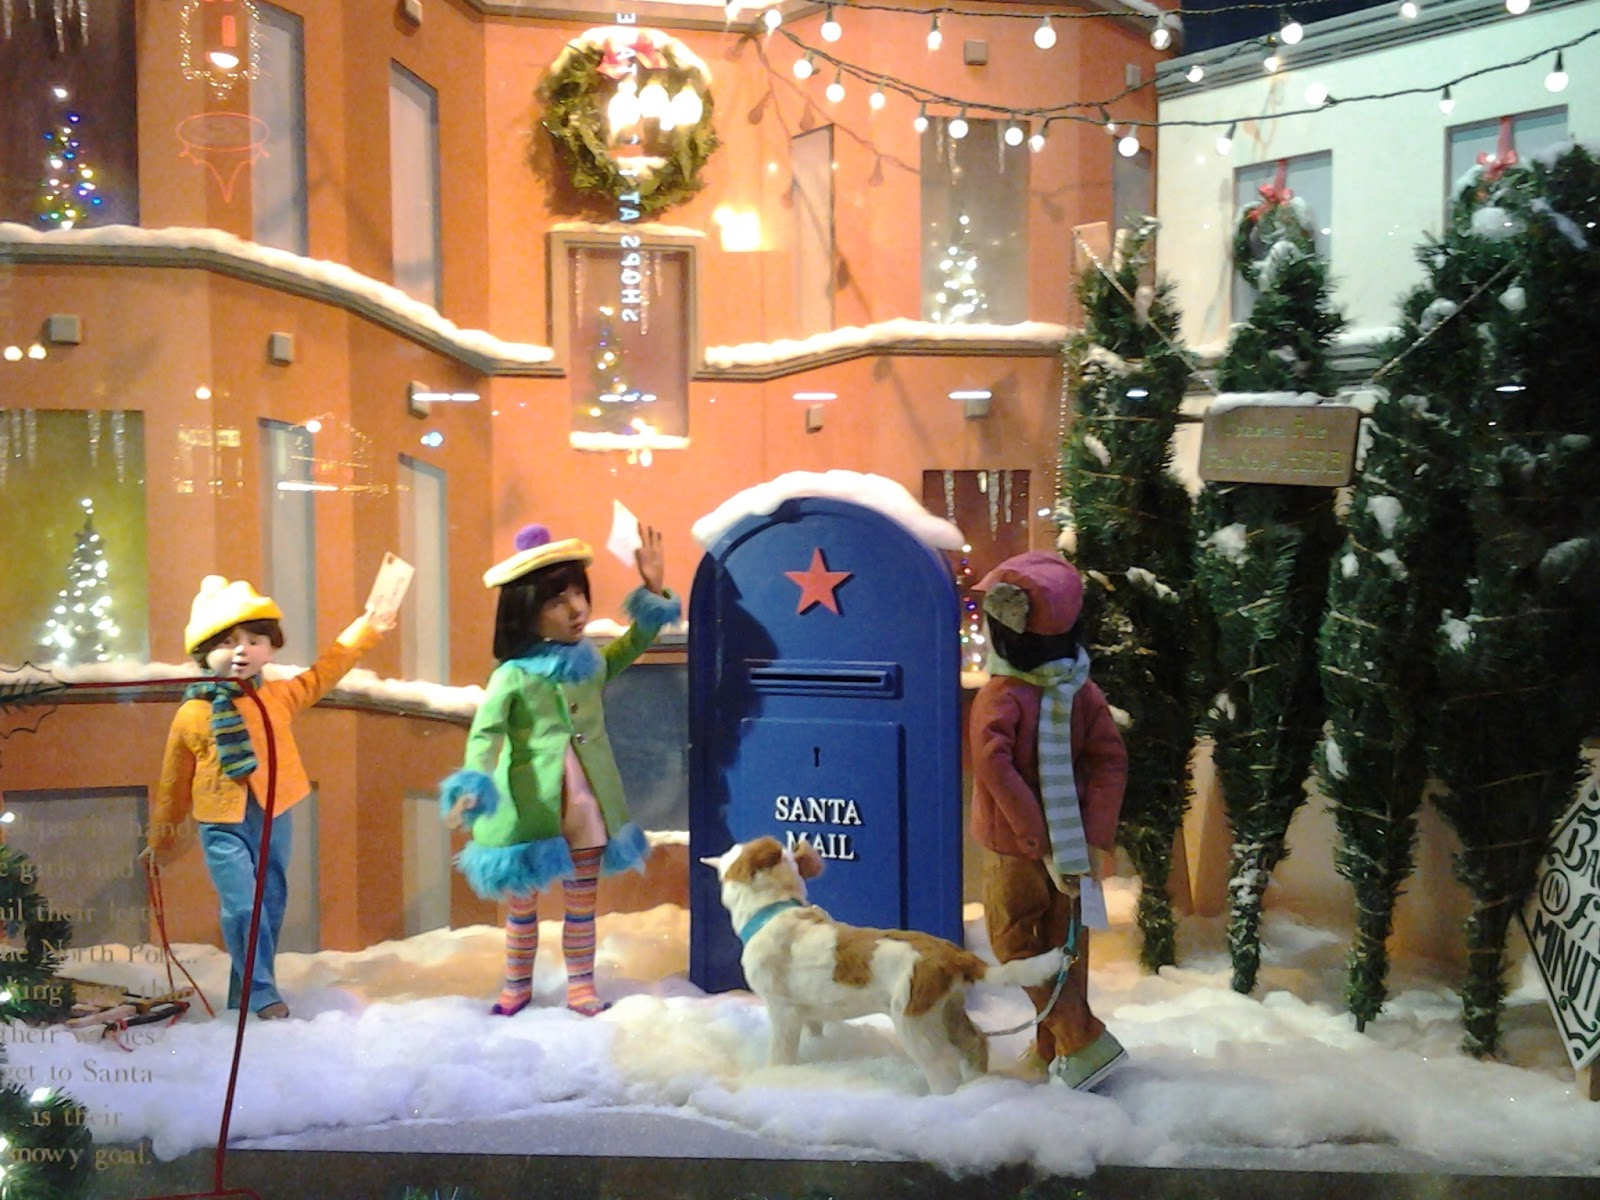 Chicago Macy's Christmas Windows 2014; Mailing my letter to Santa